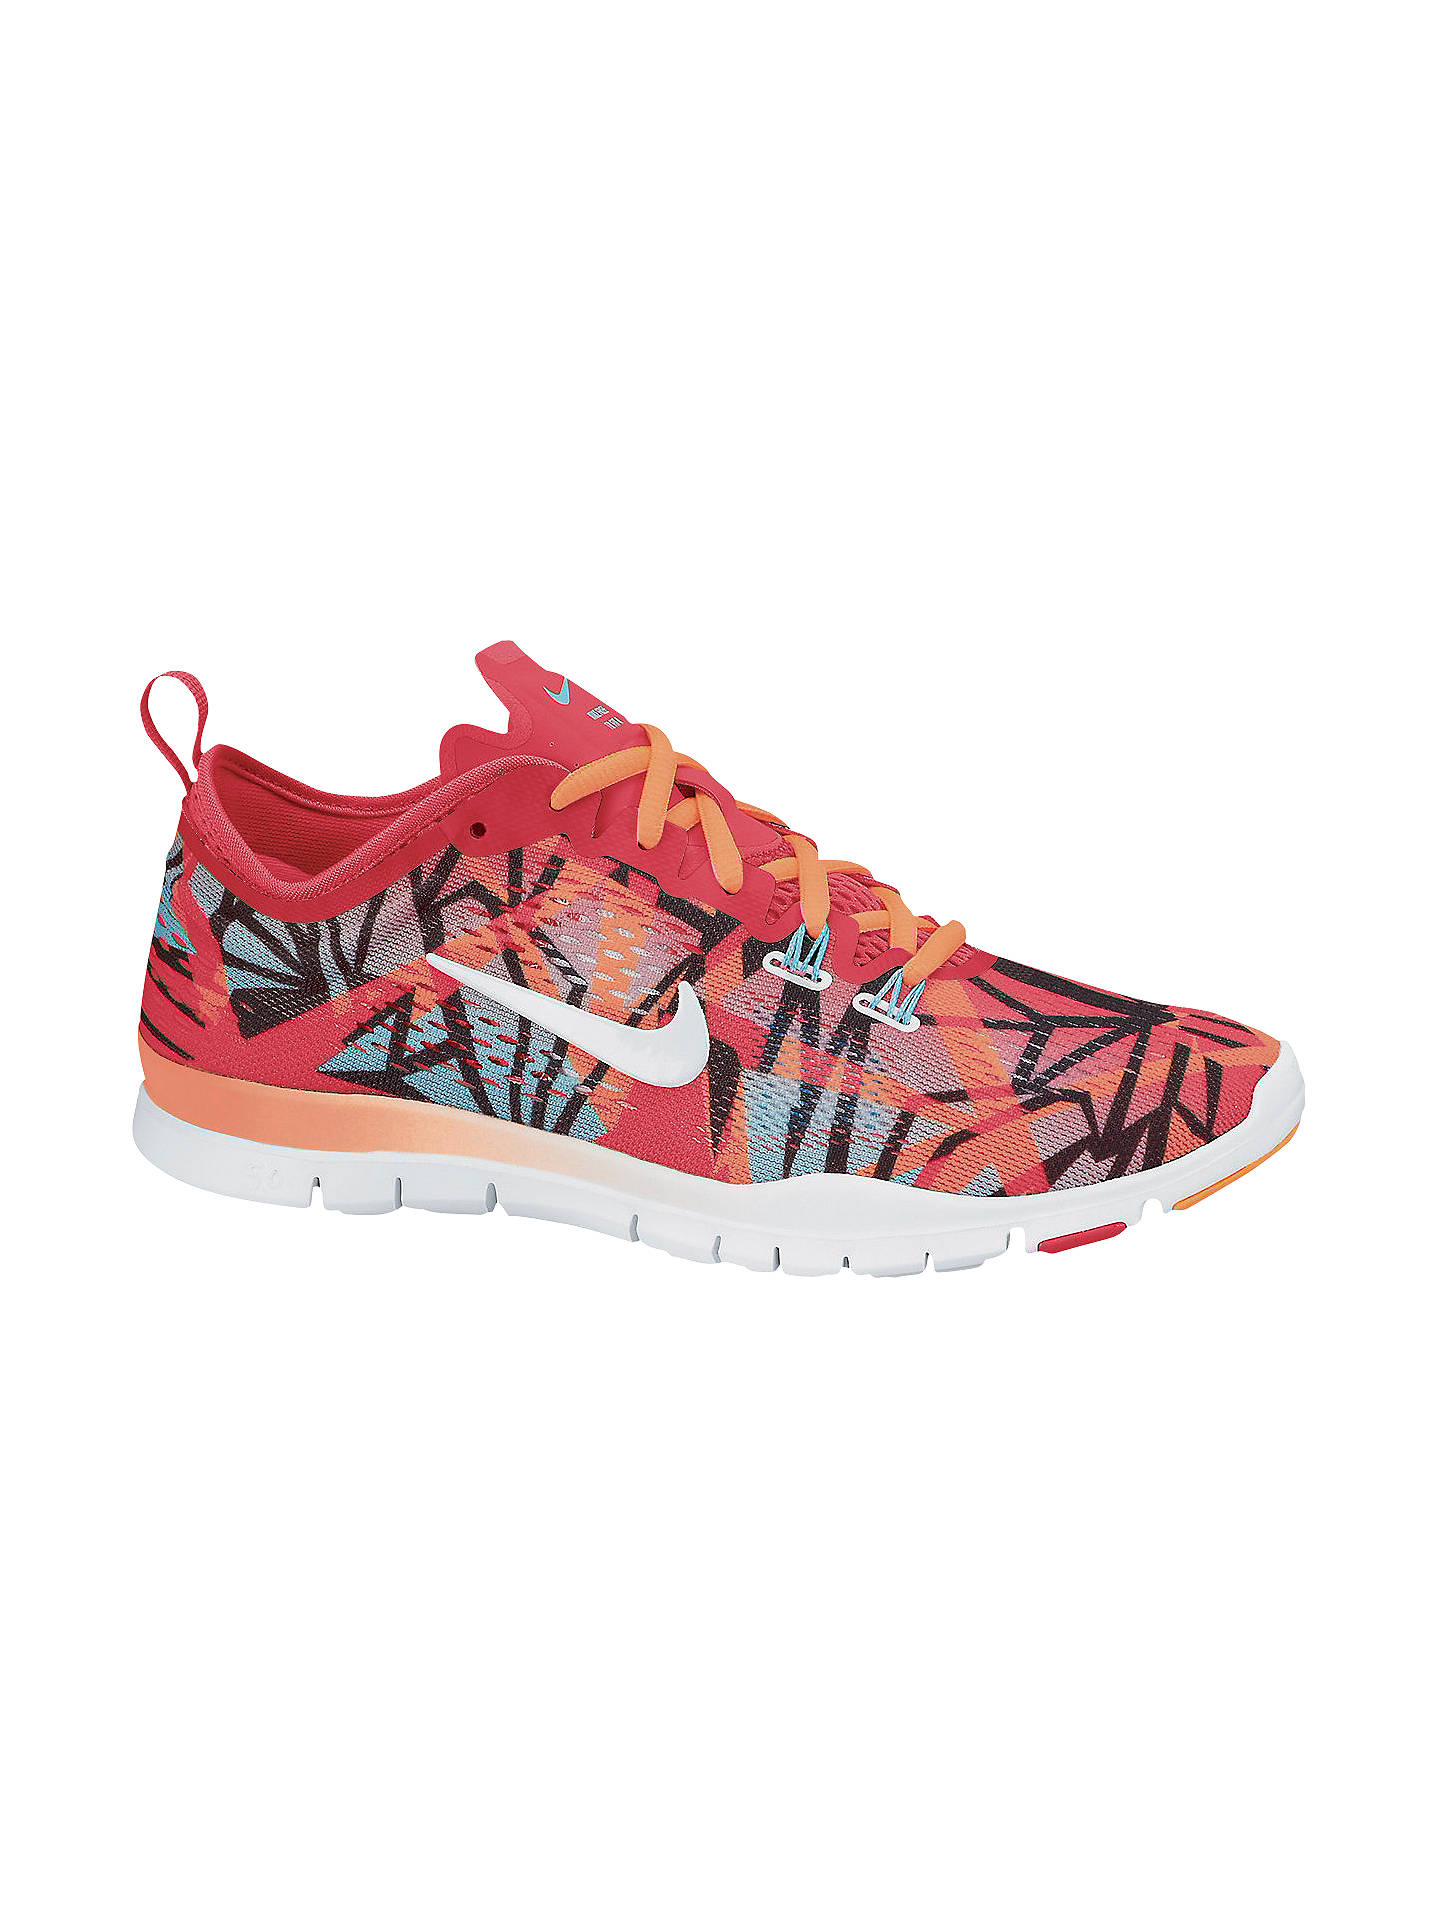 premium selection 998c8 8eb97 Nike Women's Free 5.0 TR Fit 4 Cross Trainers, Red/Multi at ...